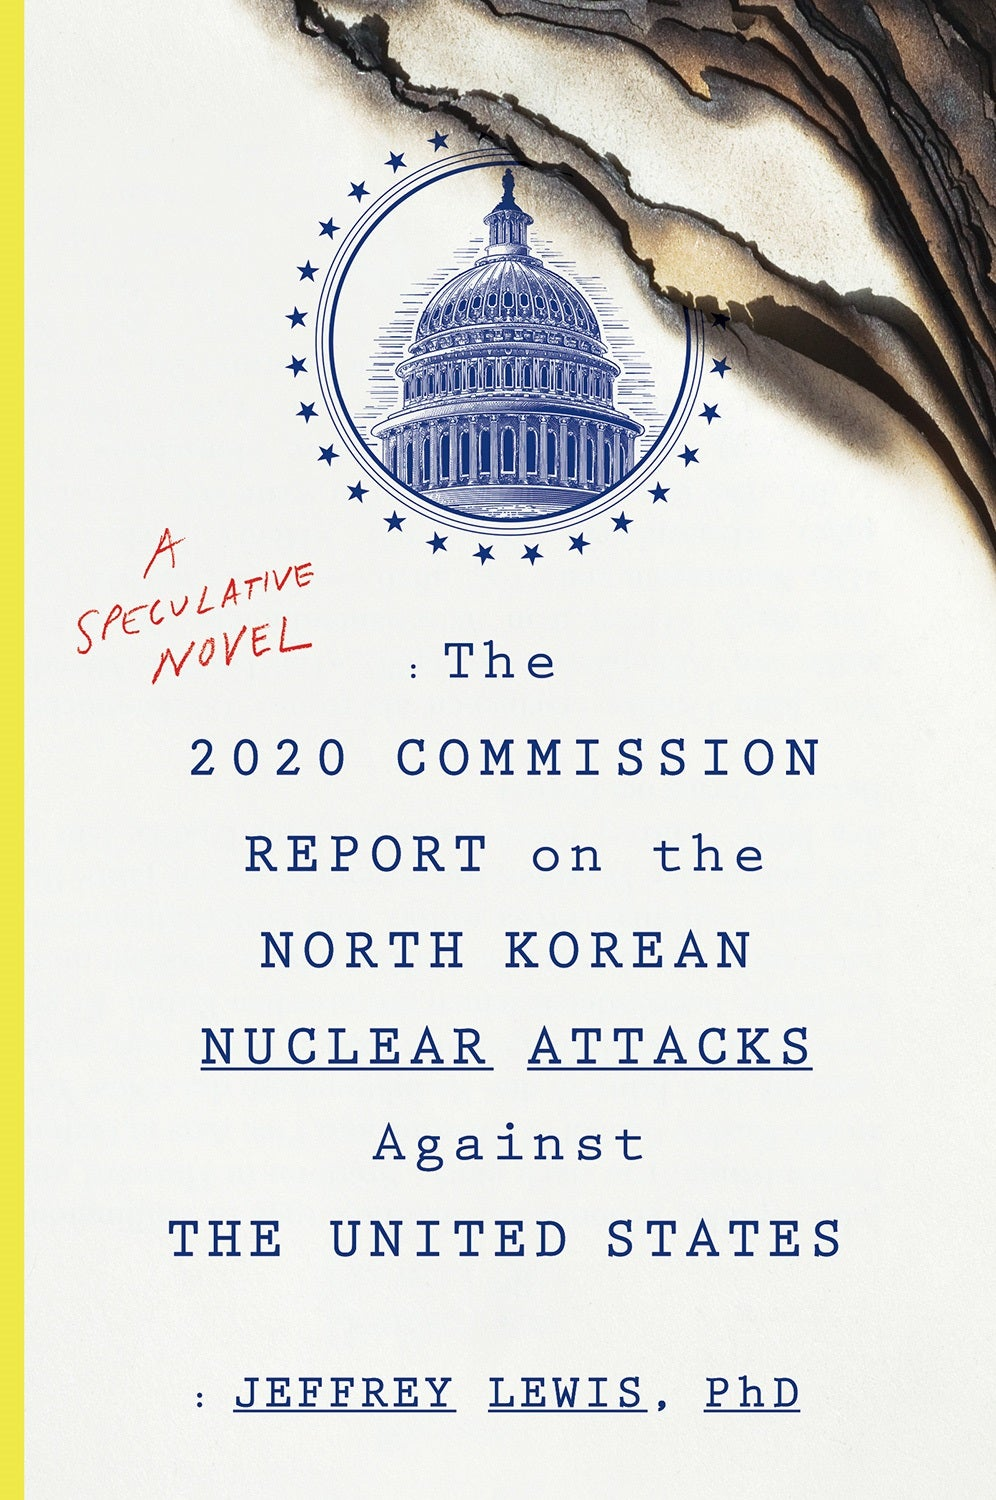 Book cover for The 2020 Commission Report on the North Korean Nuclear Attacks Against the United States.